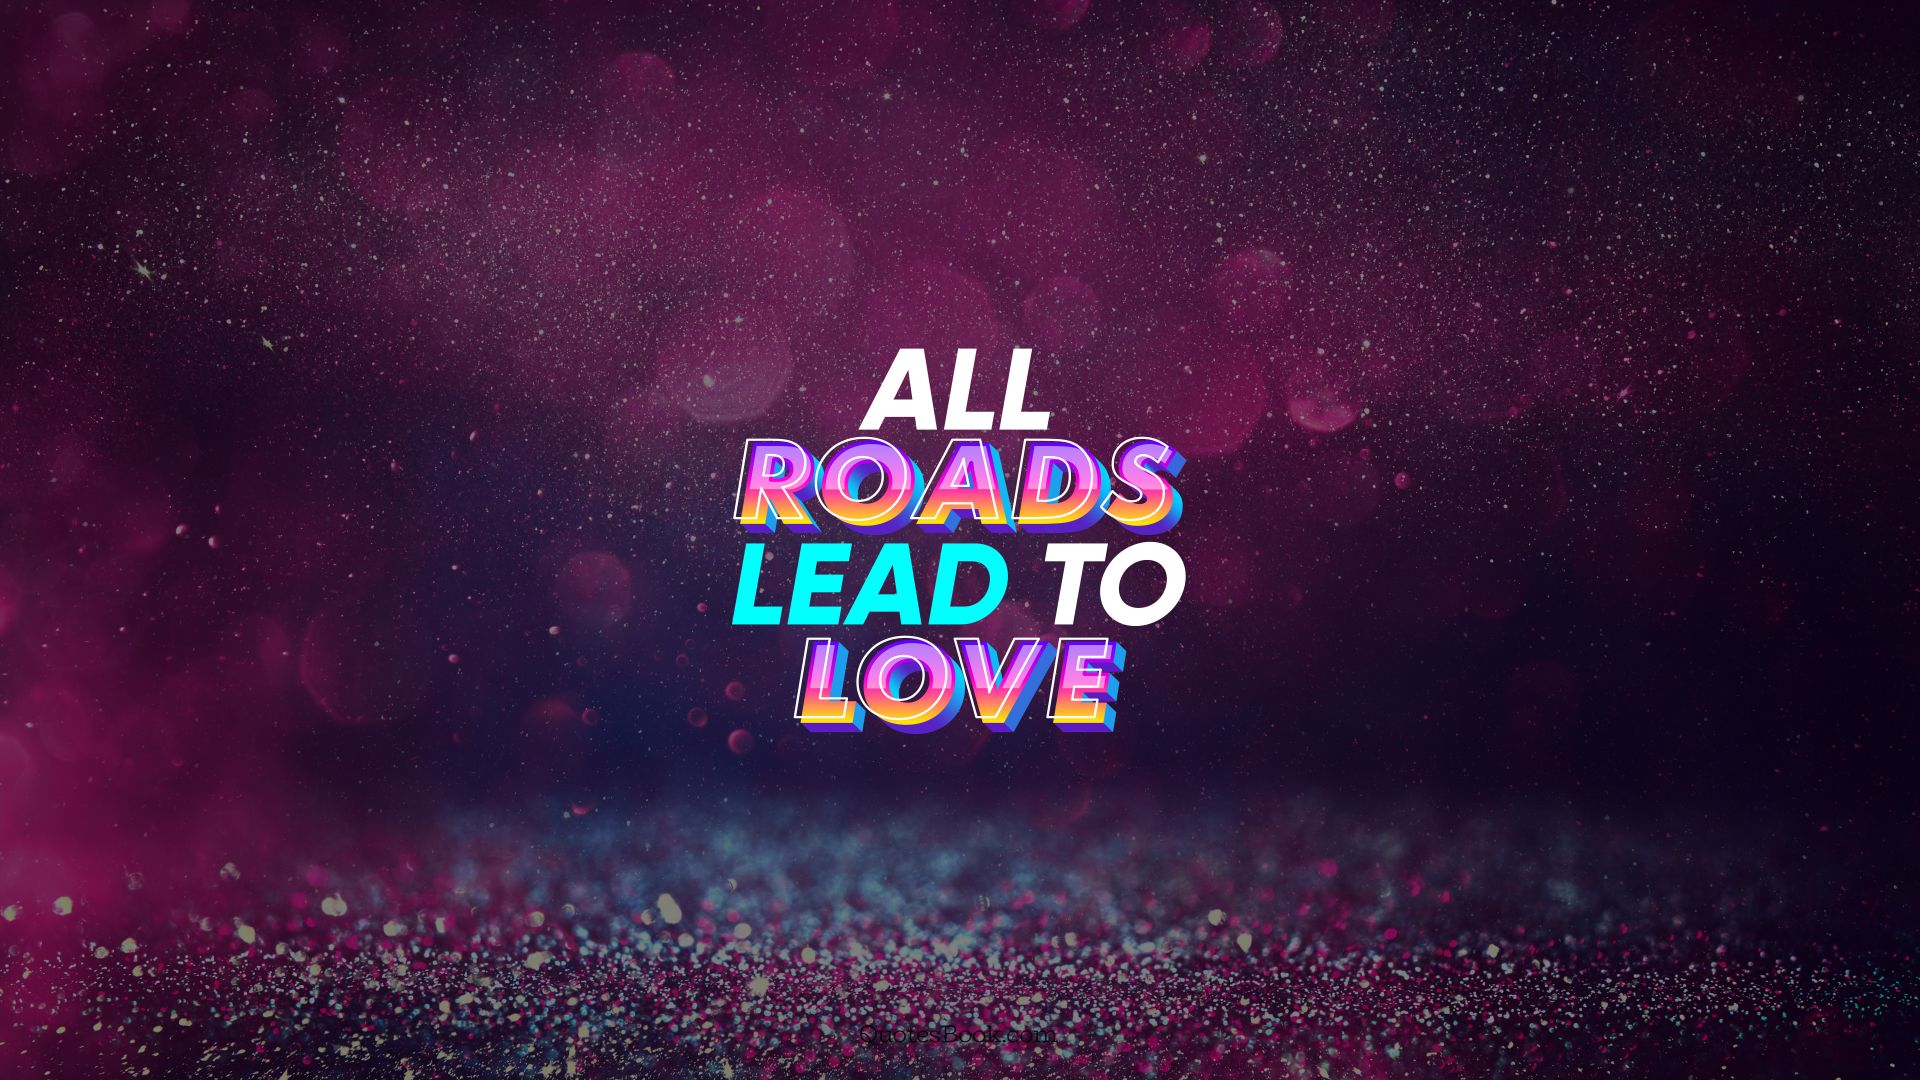 All roads lead to love. - Quote by QuotesBook